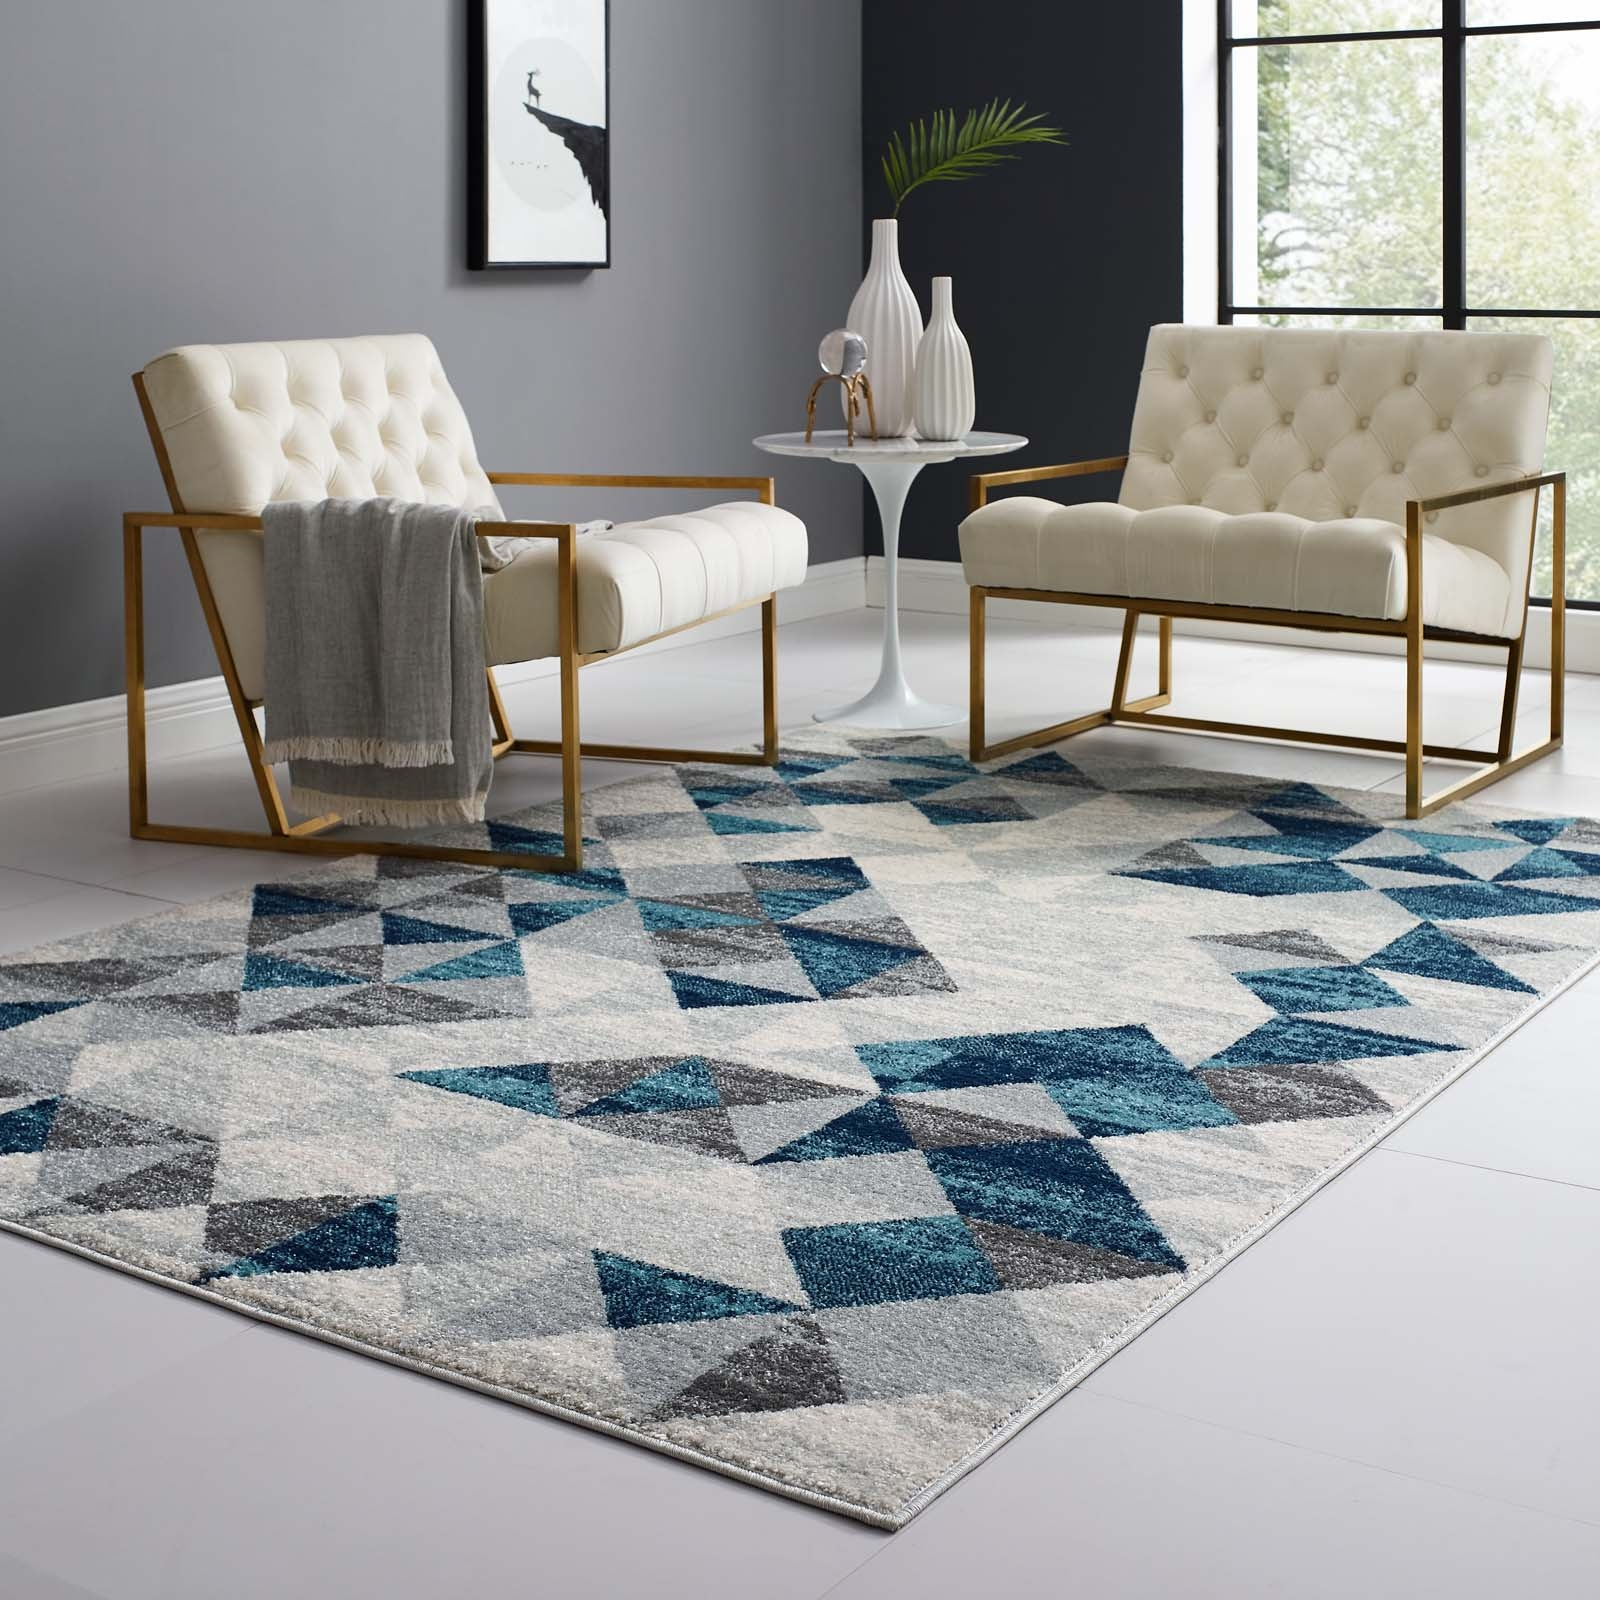 Entourage Elettra Distressed Geometric Triangle Mosaic 5x8 Area Rug in Gray and Blue